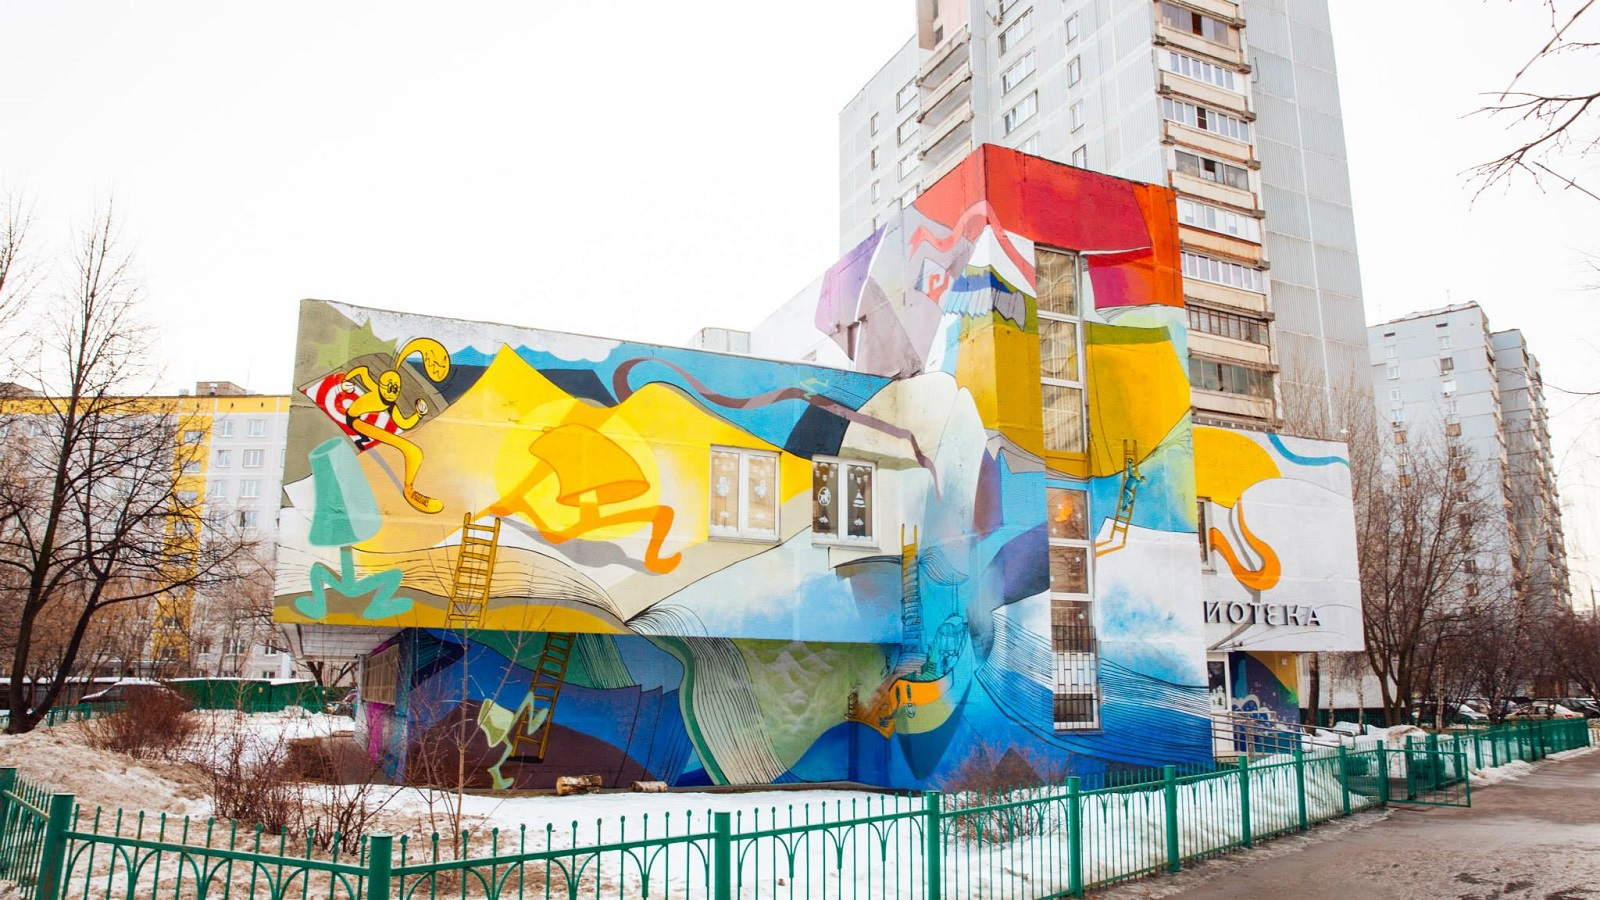 eloom-new-mural-in-mosca-01